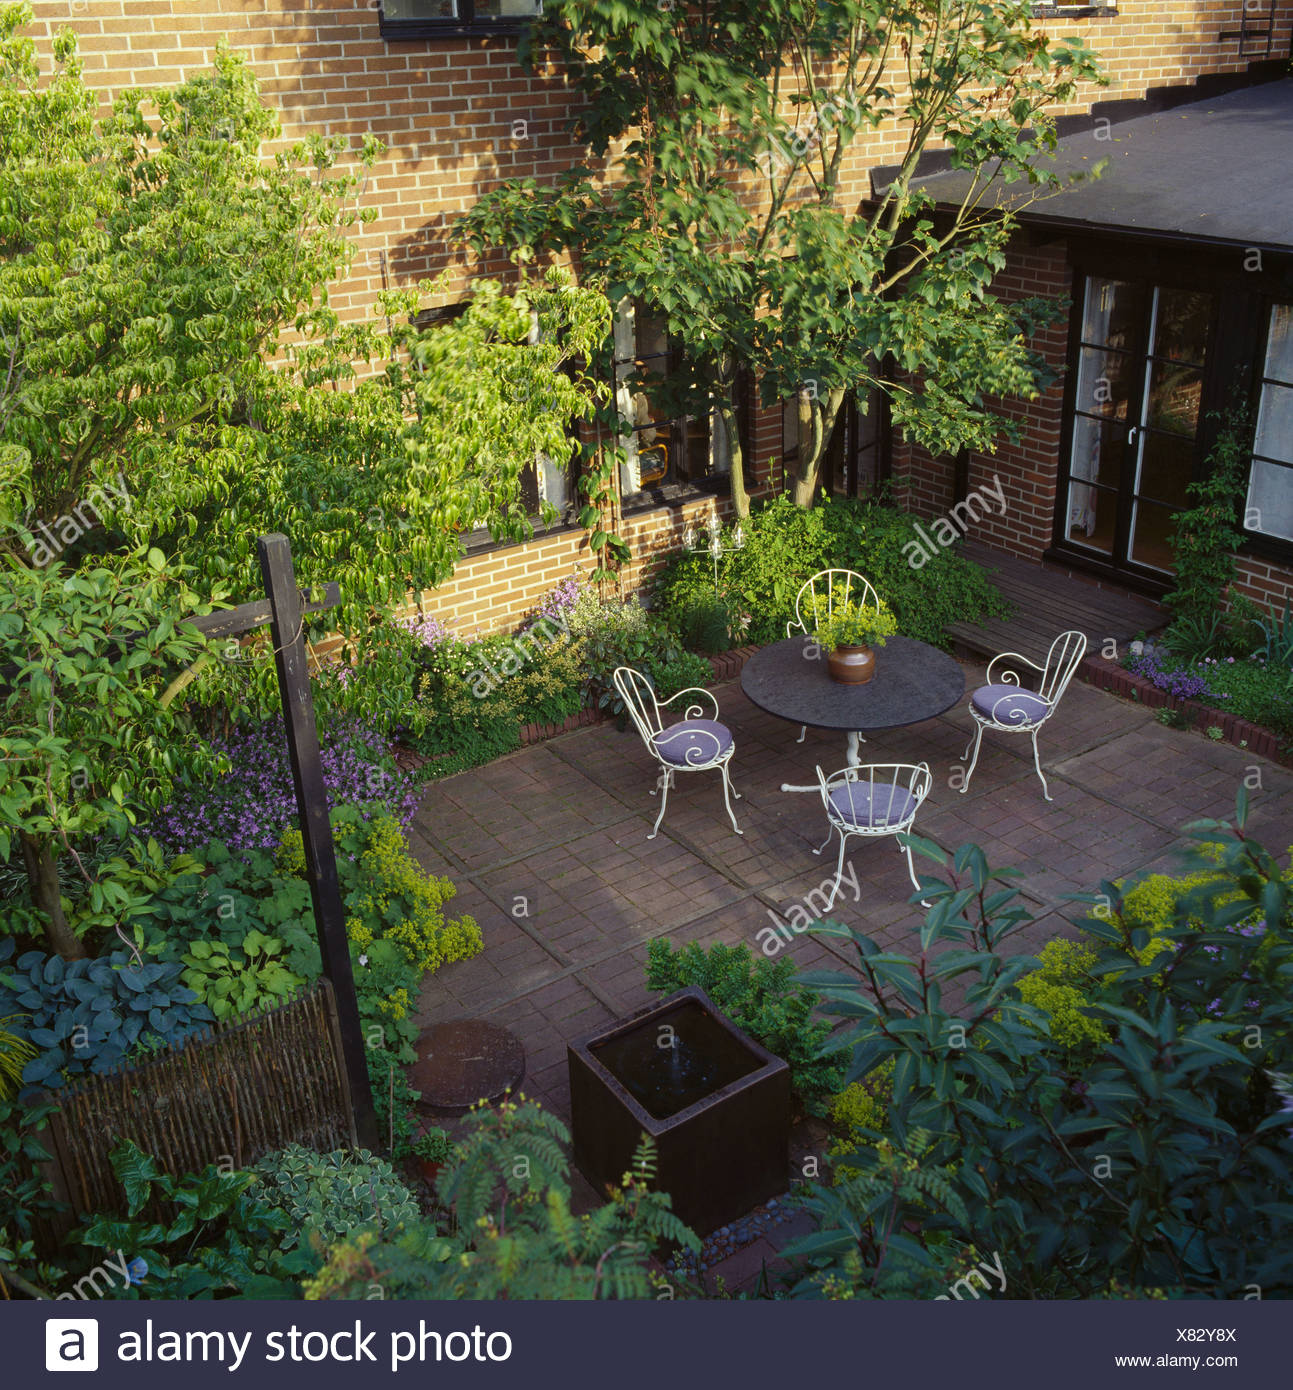 Birds-eye view of shady paved courtyard townhouse garden ... on courtyard decorating ideas, courtyard planting ideas, garden fence ideas, courtyard furniture ideas, bird bath garden ideas, house courtyard design ideas, courtyard plans ideas, enclosed courtyard ideas, courtyard gardening ideas, stone courtyard design ideas, cottage garden ideas, outdoor courtyard design ideas, courtyard landscape design, courtyard and front walkway ideas, courtyard paver ideas, front courtyard design ideas, small courtyard ideas, courtyard home ideas, courtyard terracotta,